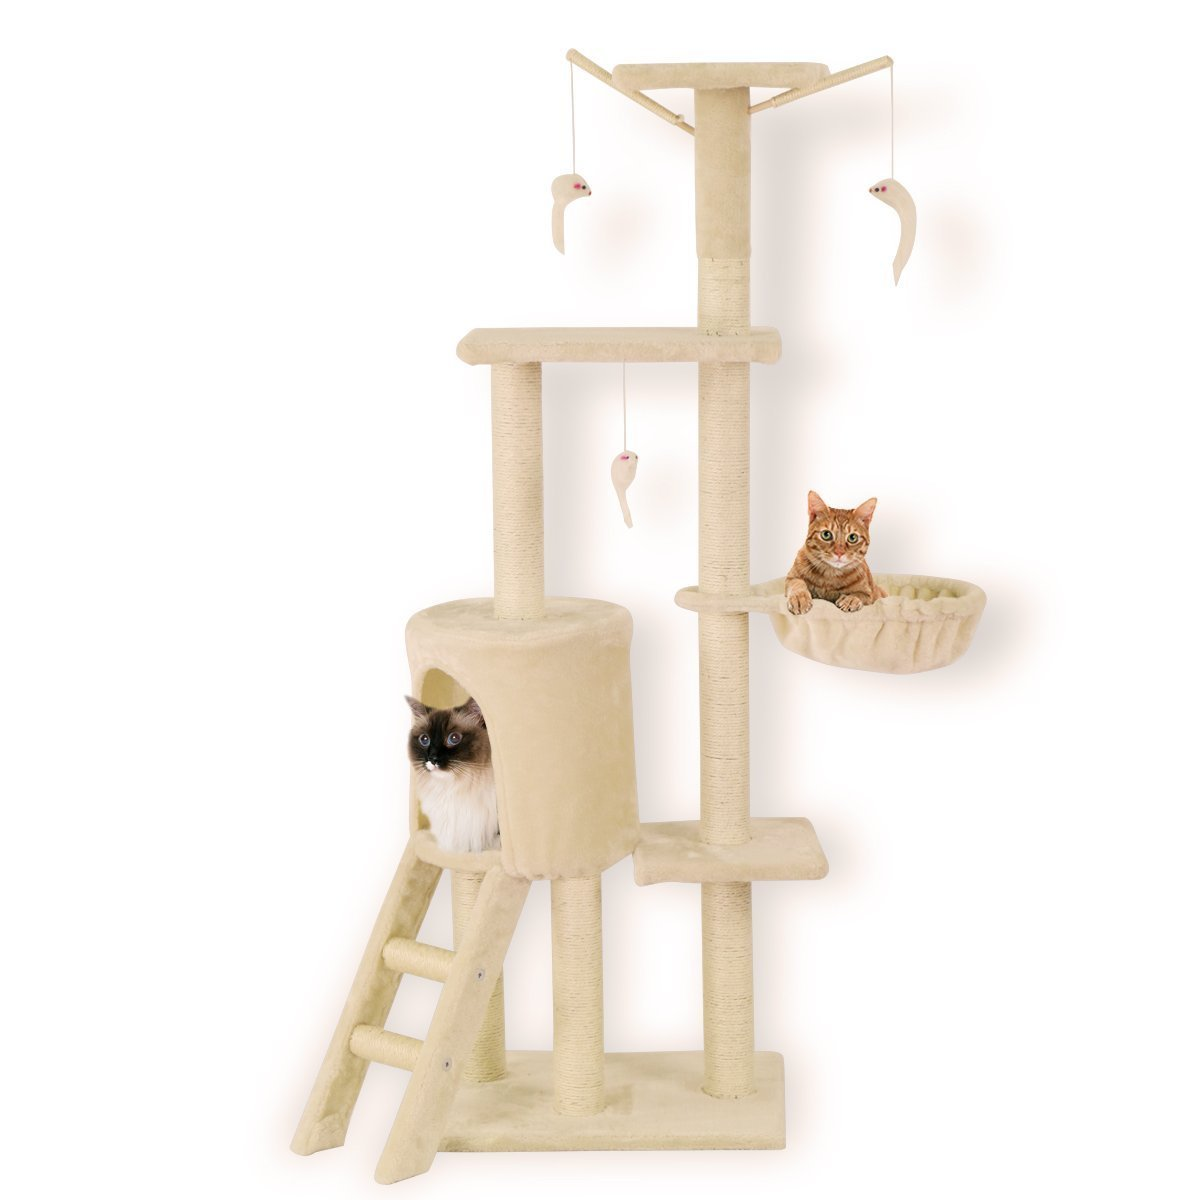 FIRSTWELL Cat Tree Condo Tower Kitty Furniture Kitten Play House with Scratching Post, Hammock, Perch, Hanging Toy, PCT015, Beige